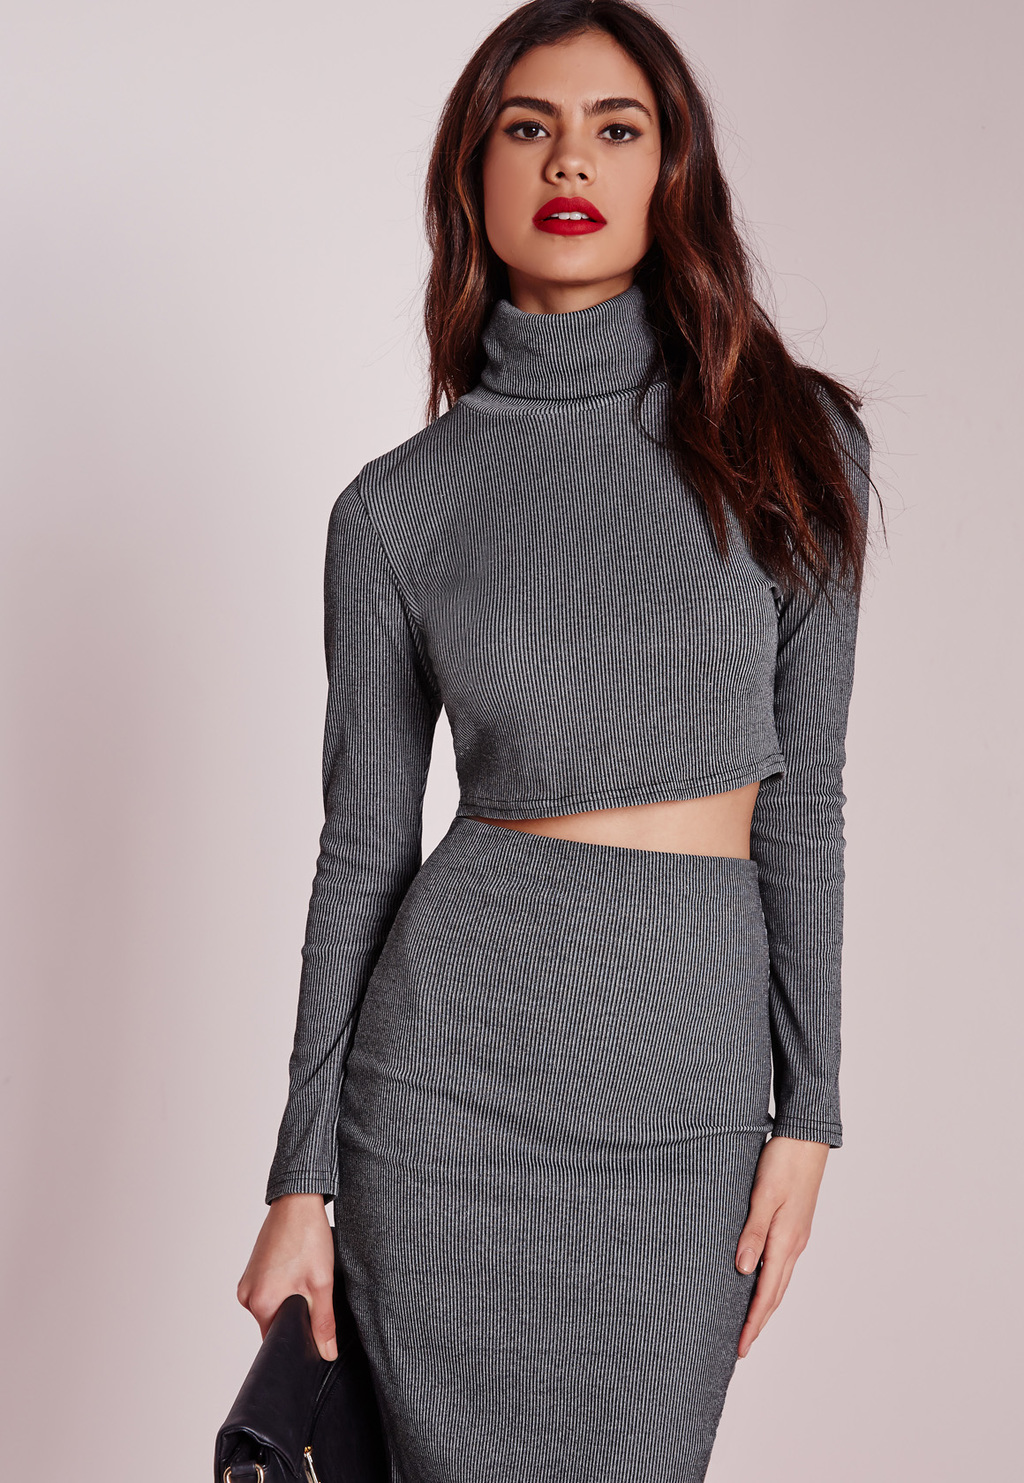 Petite High Neck Long Sleeve Ribbed Crop Top Grey, Grey - pattern: plain; neckline: high neck; length: cropped; predominant colour: mid grey; occasions: casual, evening; style: top; fibres: polyester/polyamide - stretch; fit: tight; sleeve length: long sleeve; sleeve style: standard; pattern type: fabric; texture group: jersey - stretchy/drapey; season: a/w 2015; wardrobe: basic